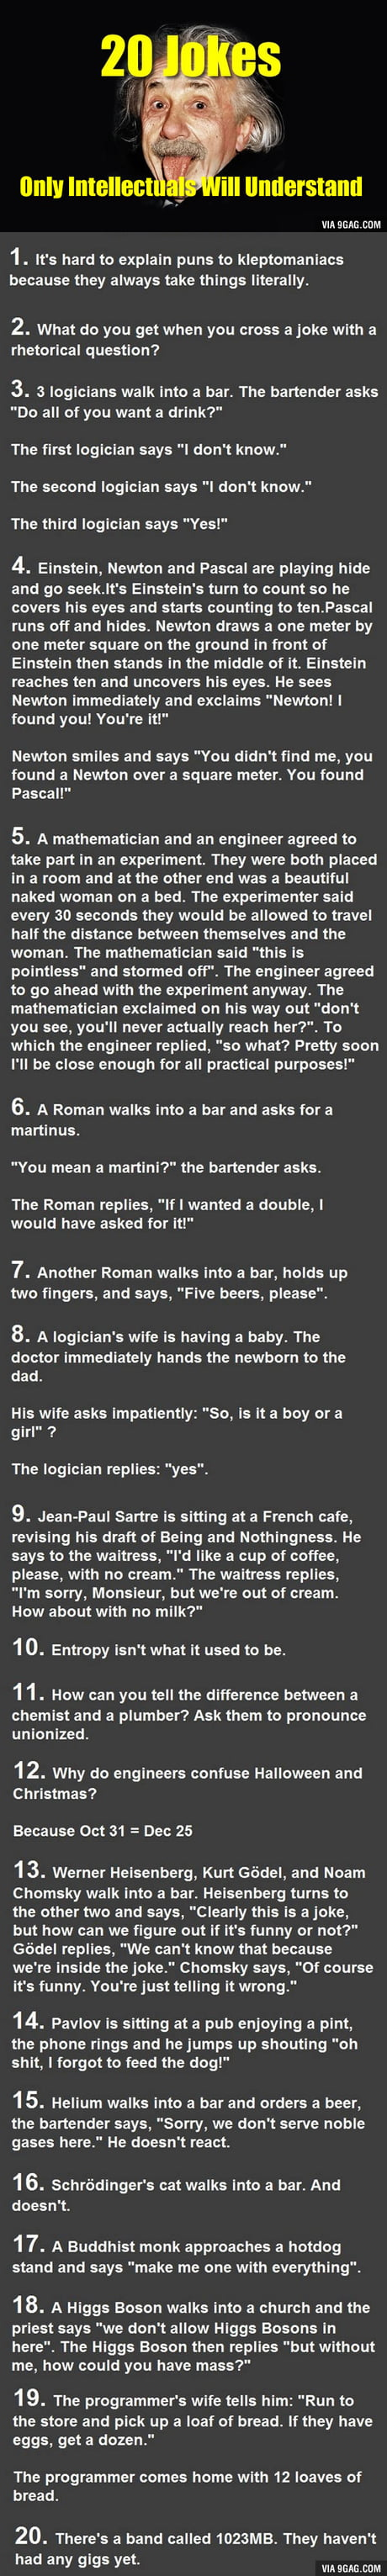 20 Jokes That Only Intellectuals Will Understand   20GAG